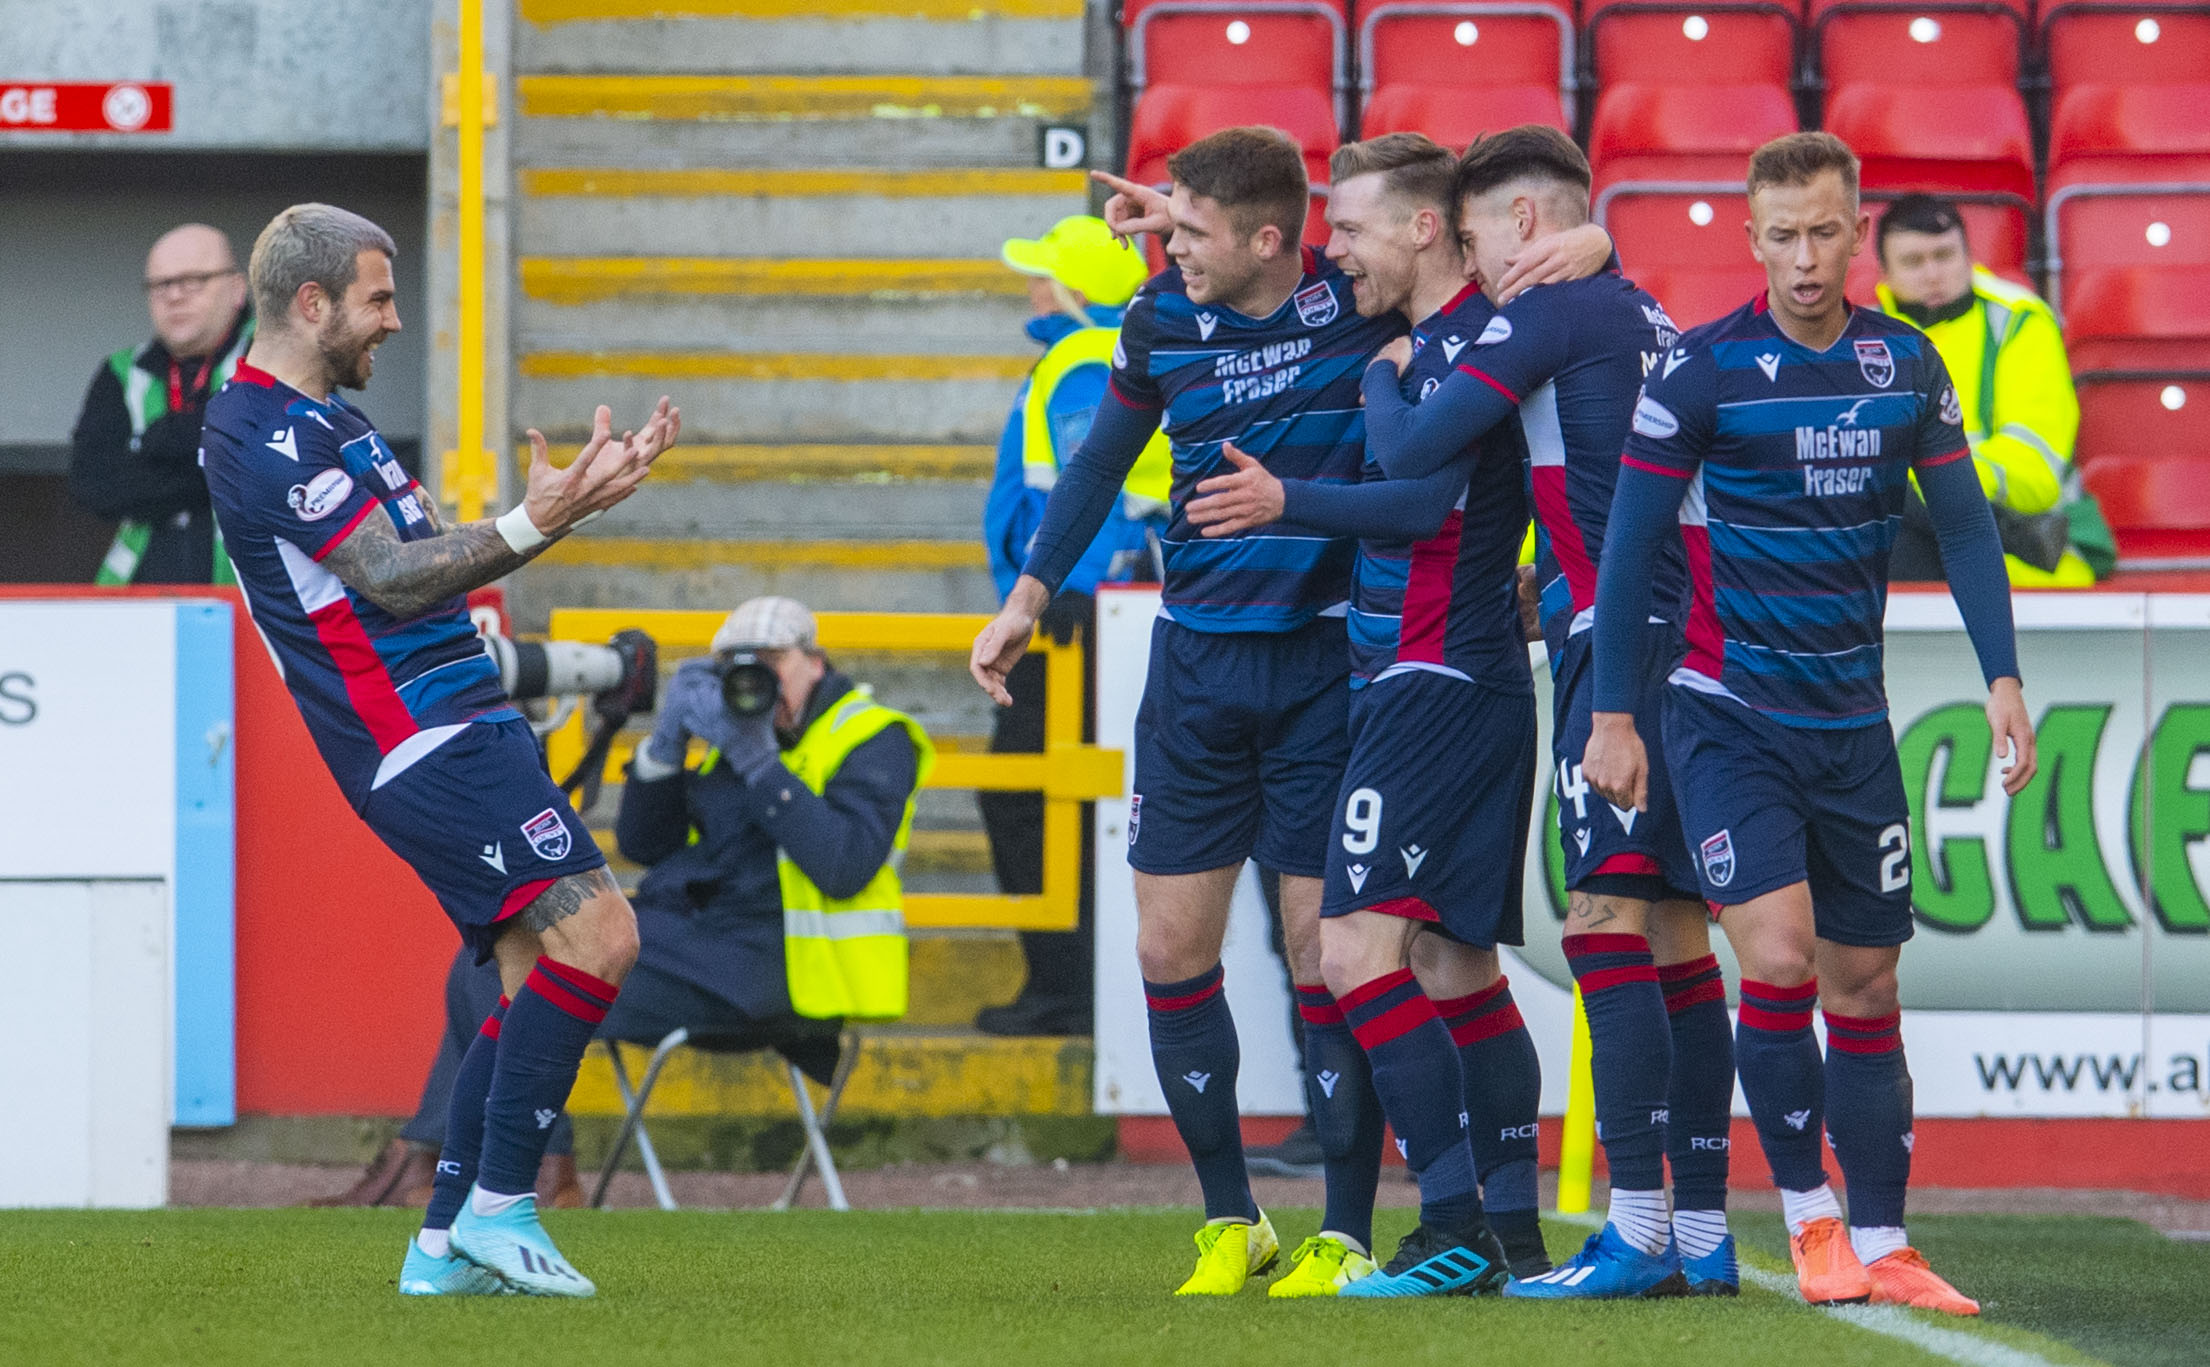 Billy Mckay celebrates his first goal.